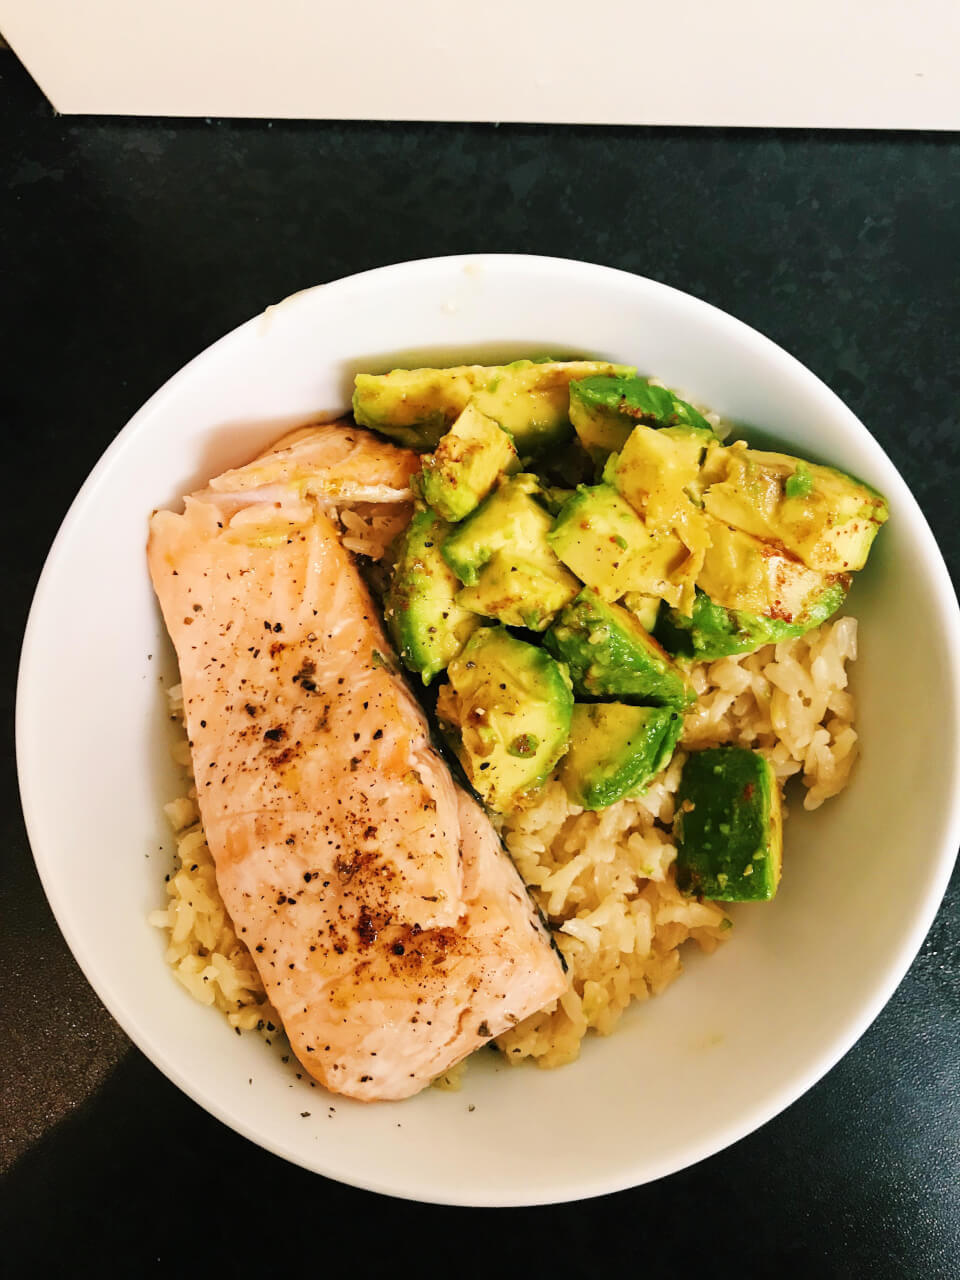 Easy Meal Prep Recipes for Lazy Days